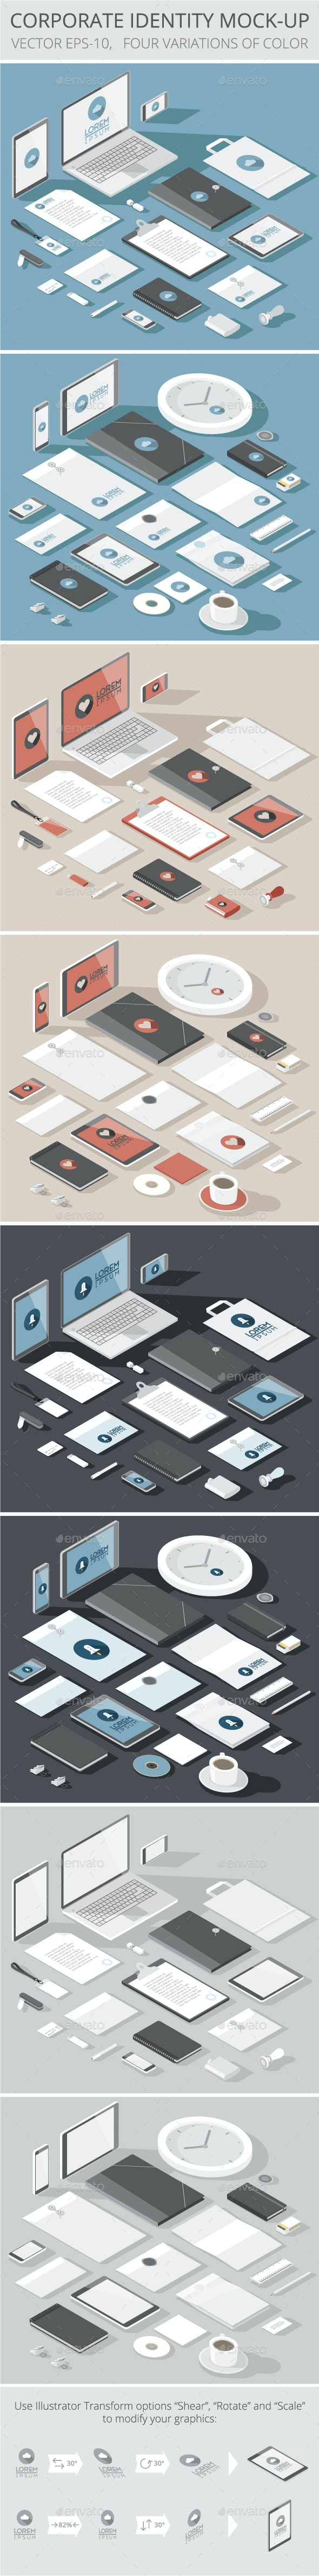 Corporate Identity Mock-up Template - Concepts Business